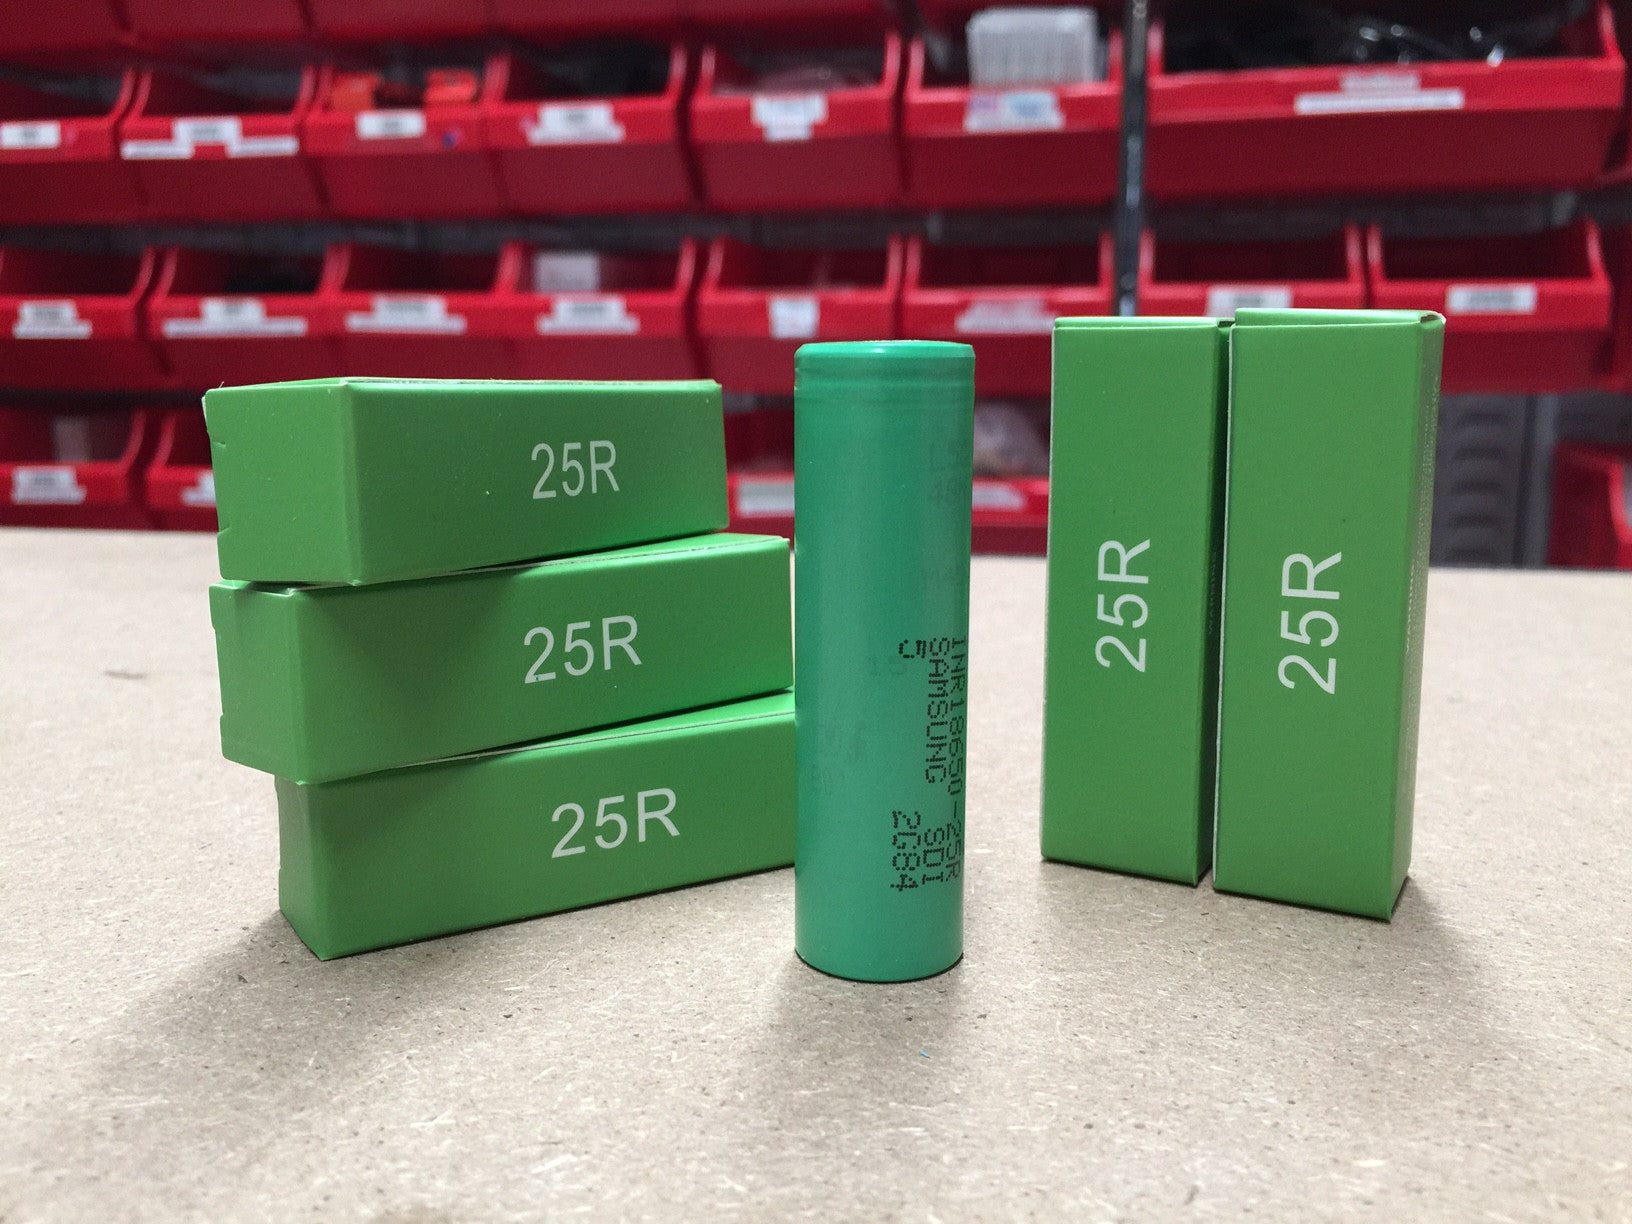 Samsung INR18650-25R 18650 2500mah Rechargeable Battery - Wick And Wire Co Melbourne, Victoria Australia Vape Shop